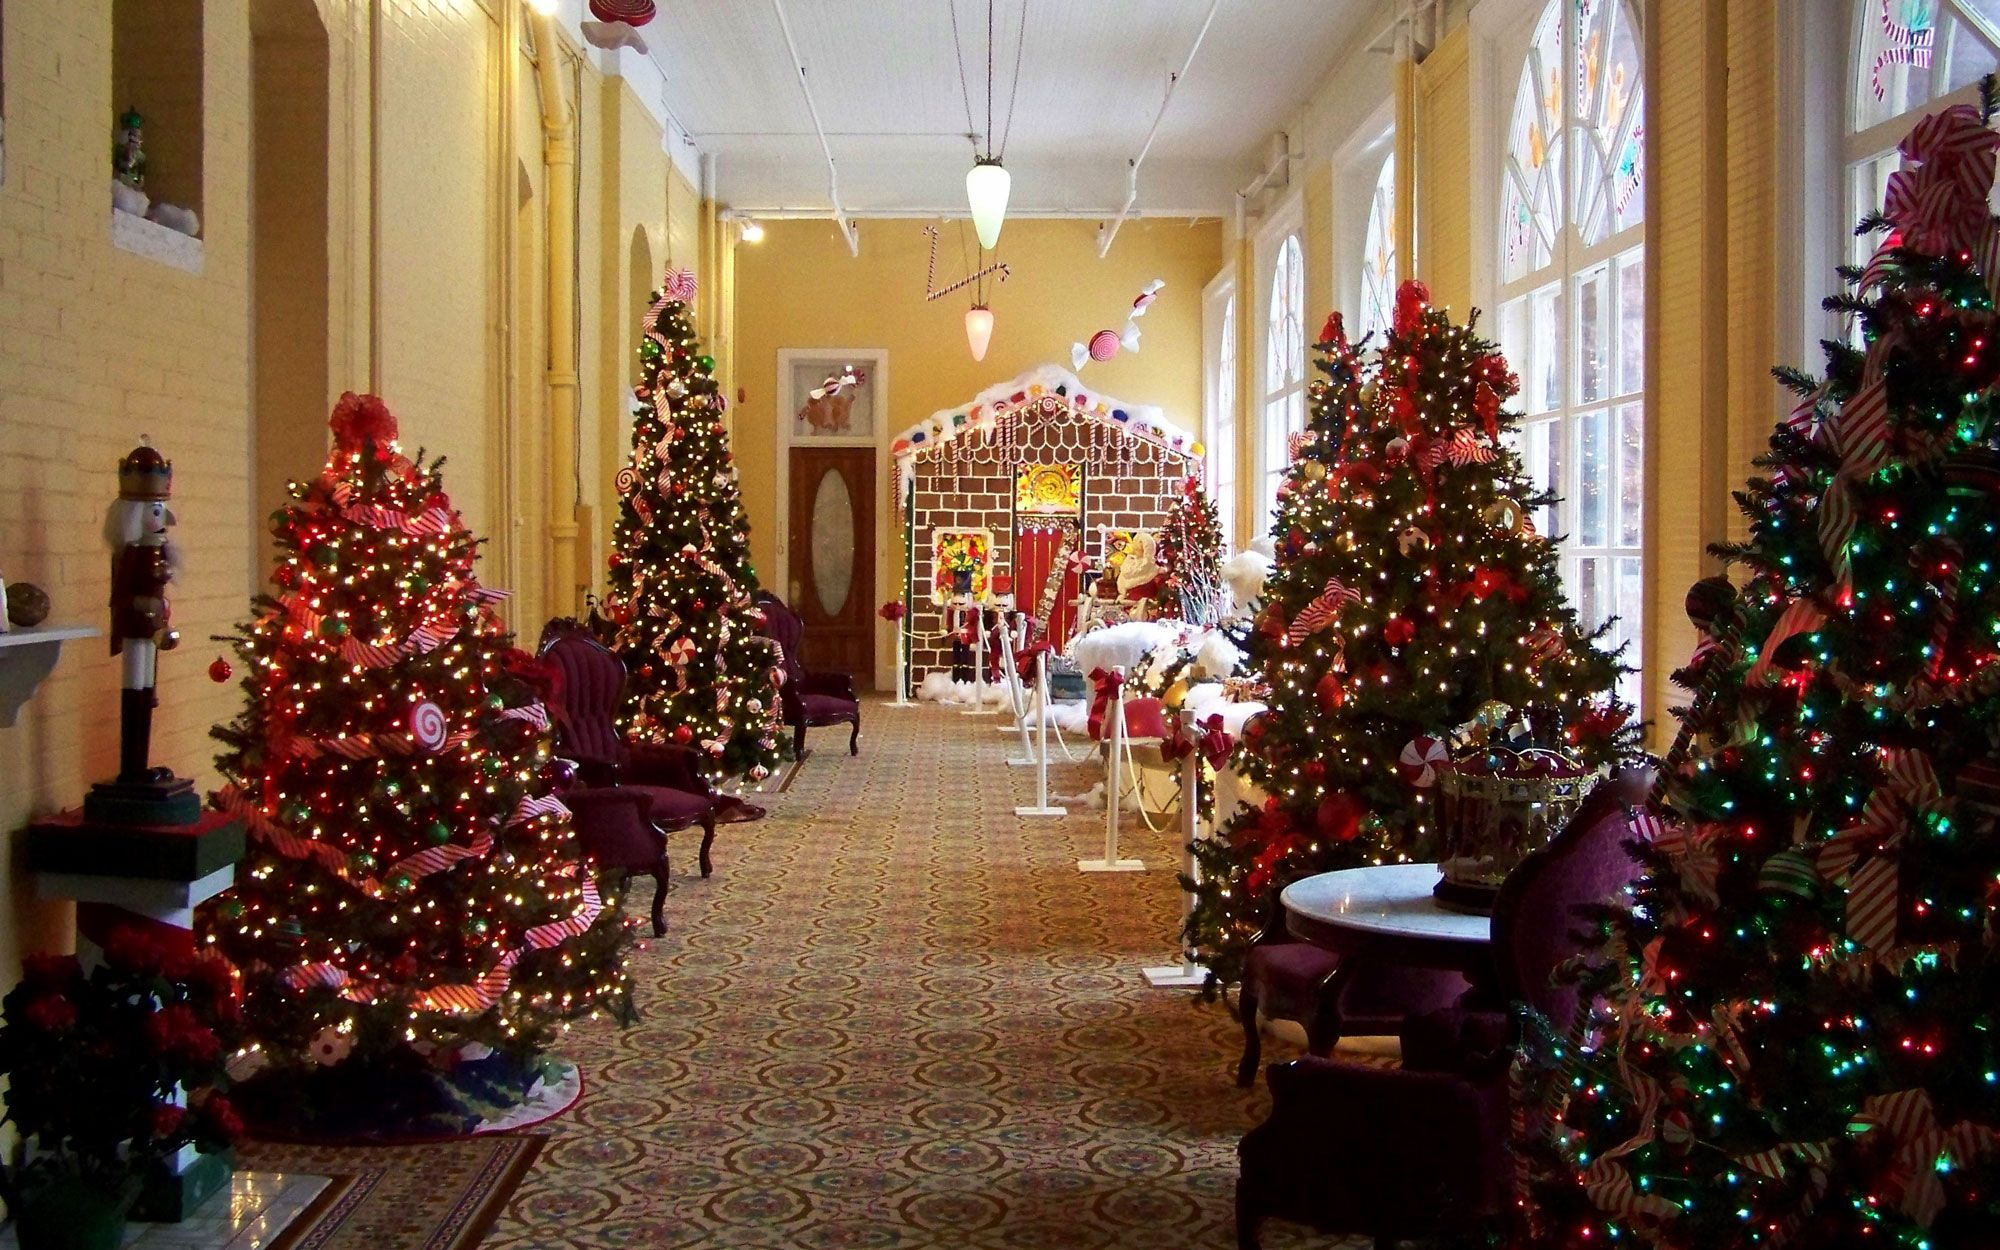 Best Christmas Lights In Colorado Springs 2020 America's Best Hotels for Christmas in 2020 | Glenwood springs